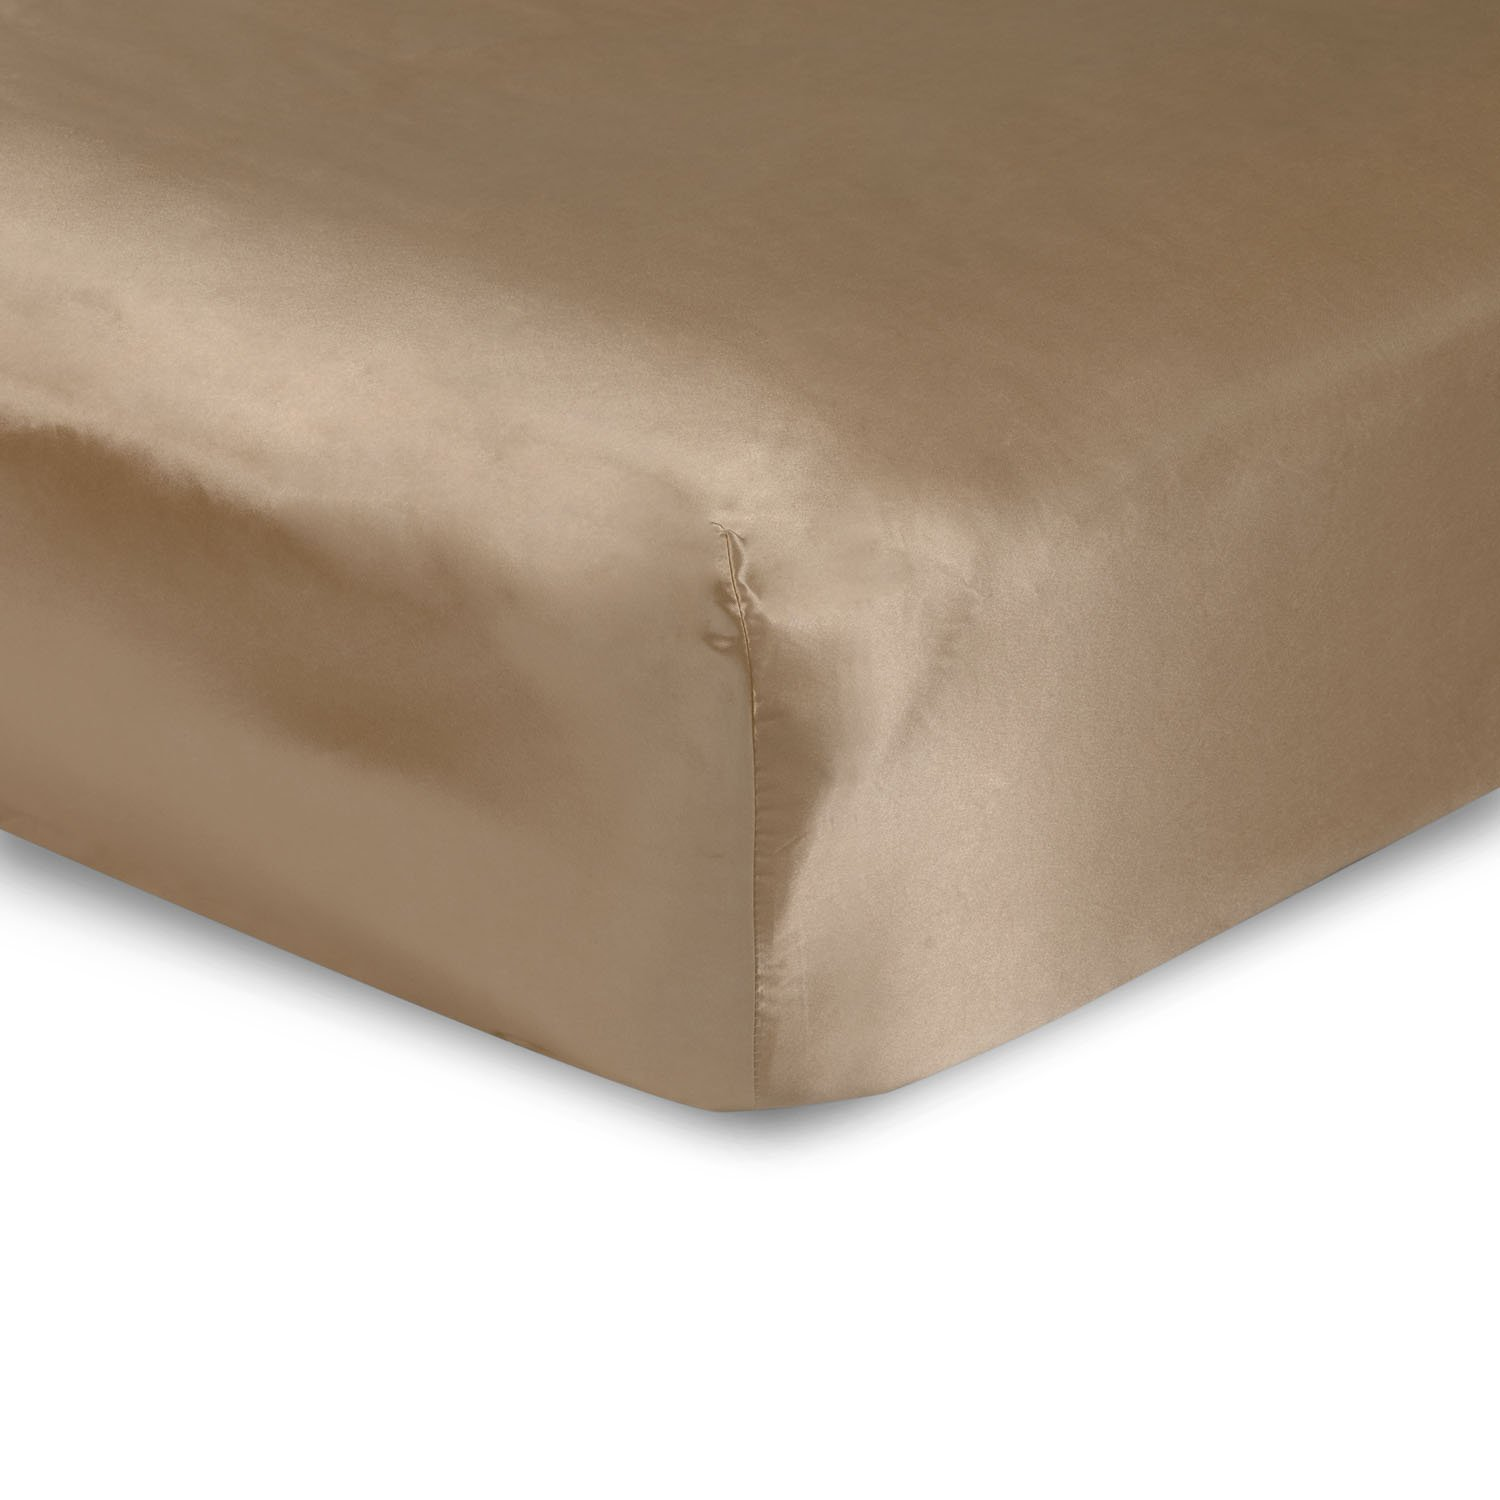 Sweet Dreams Silky Satin Fitted Sheets - Twin, Camel, Wrinkle Free and Stain Resistant Super Soft Luxury Satin Bed Sheets with Extra Deep Pockets